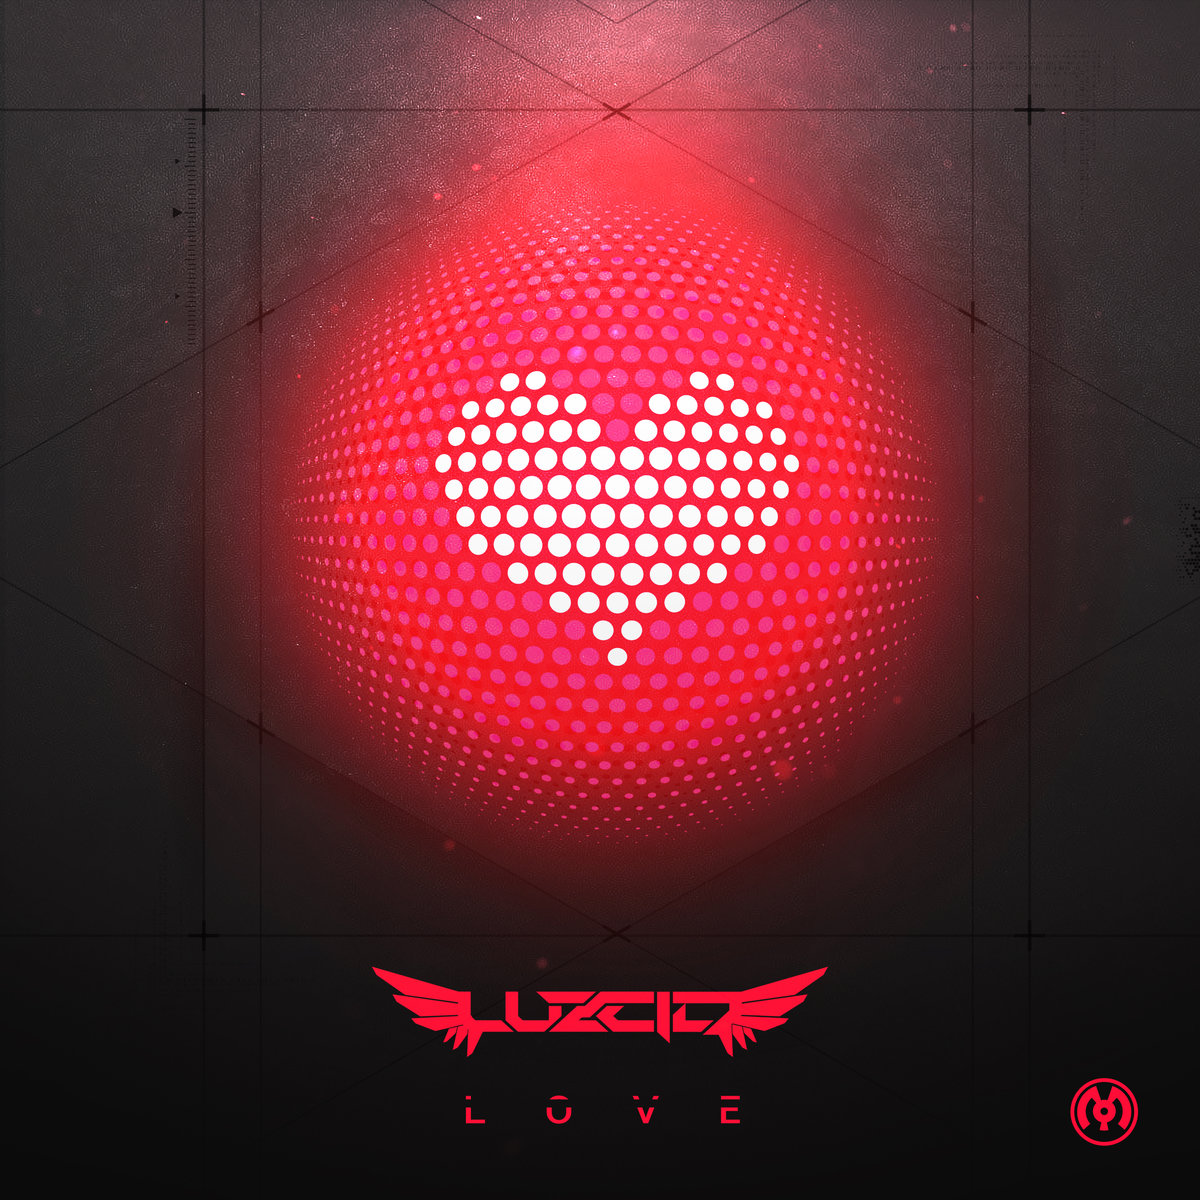 Luzcid - Love @ 'Love' album (electronic, dubstep)